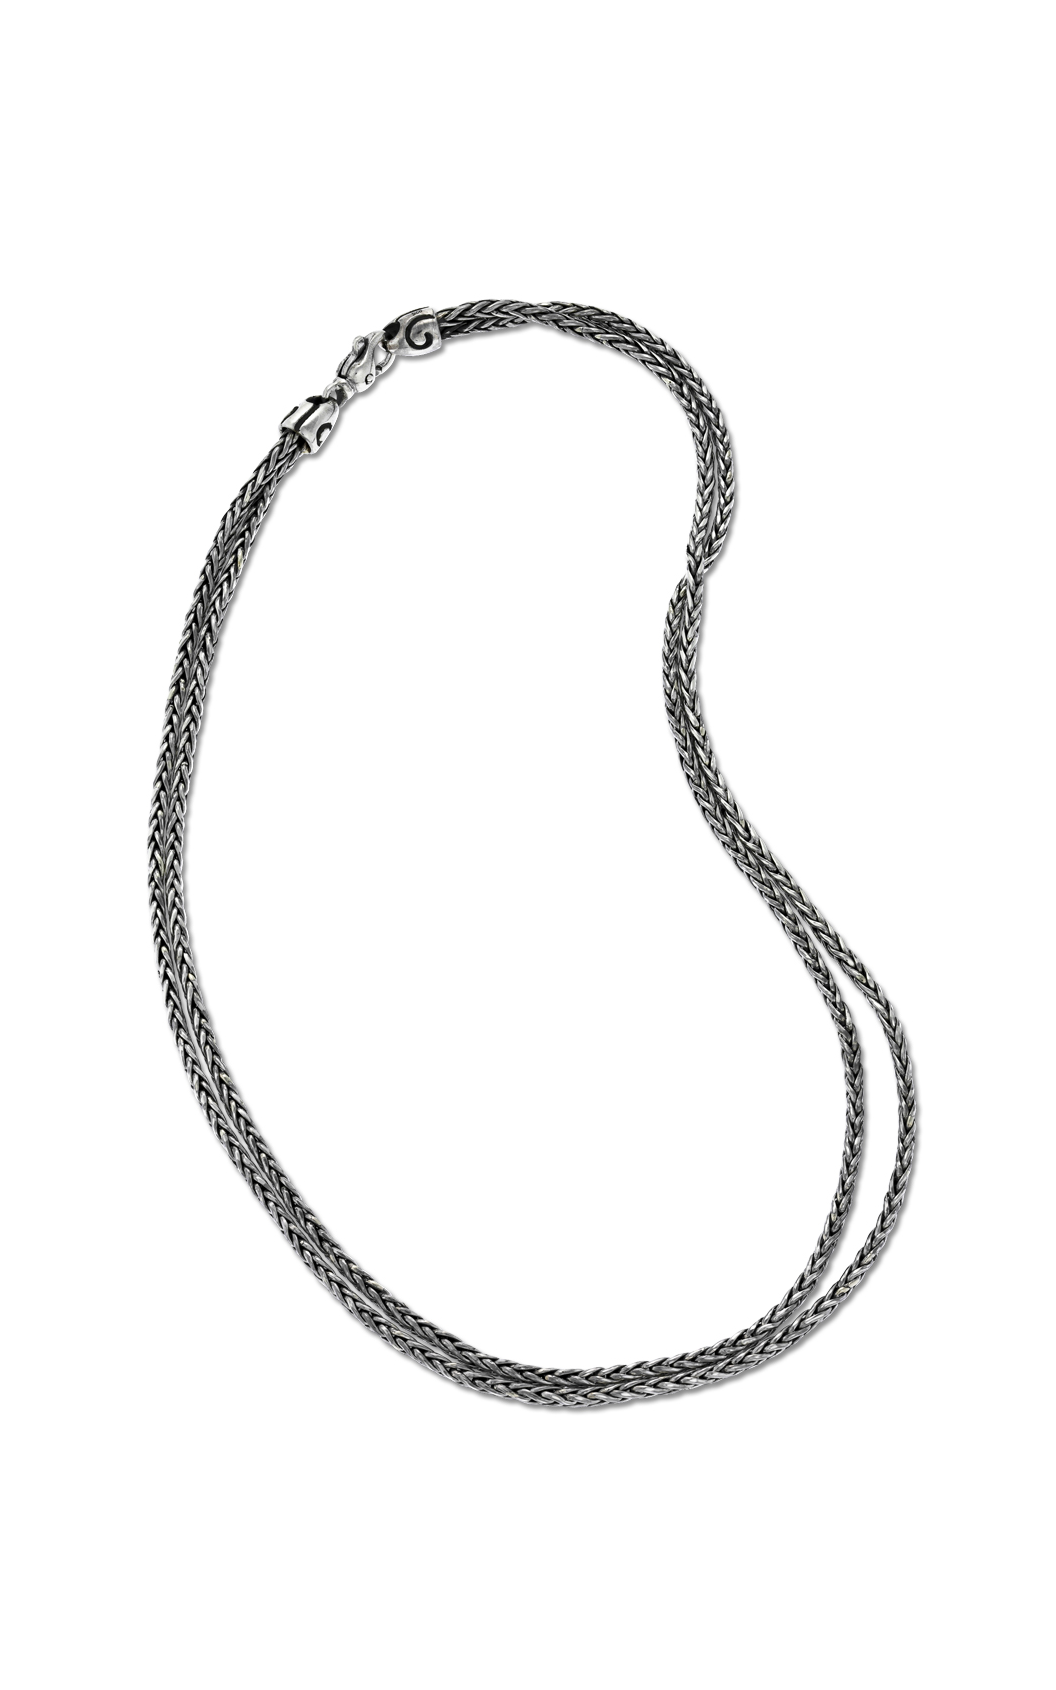 Zina Swirl Necklace A793-17 product image